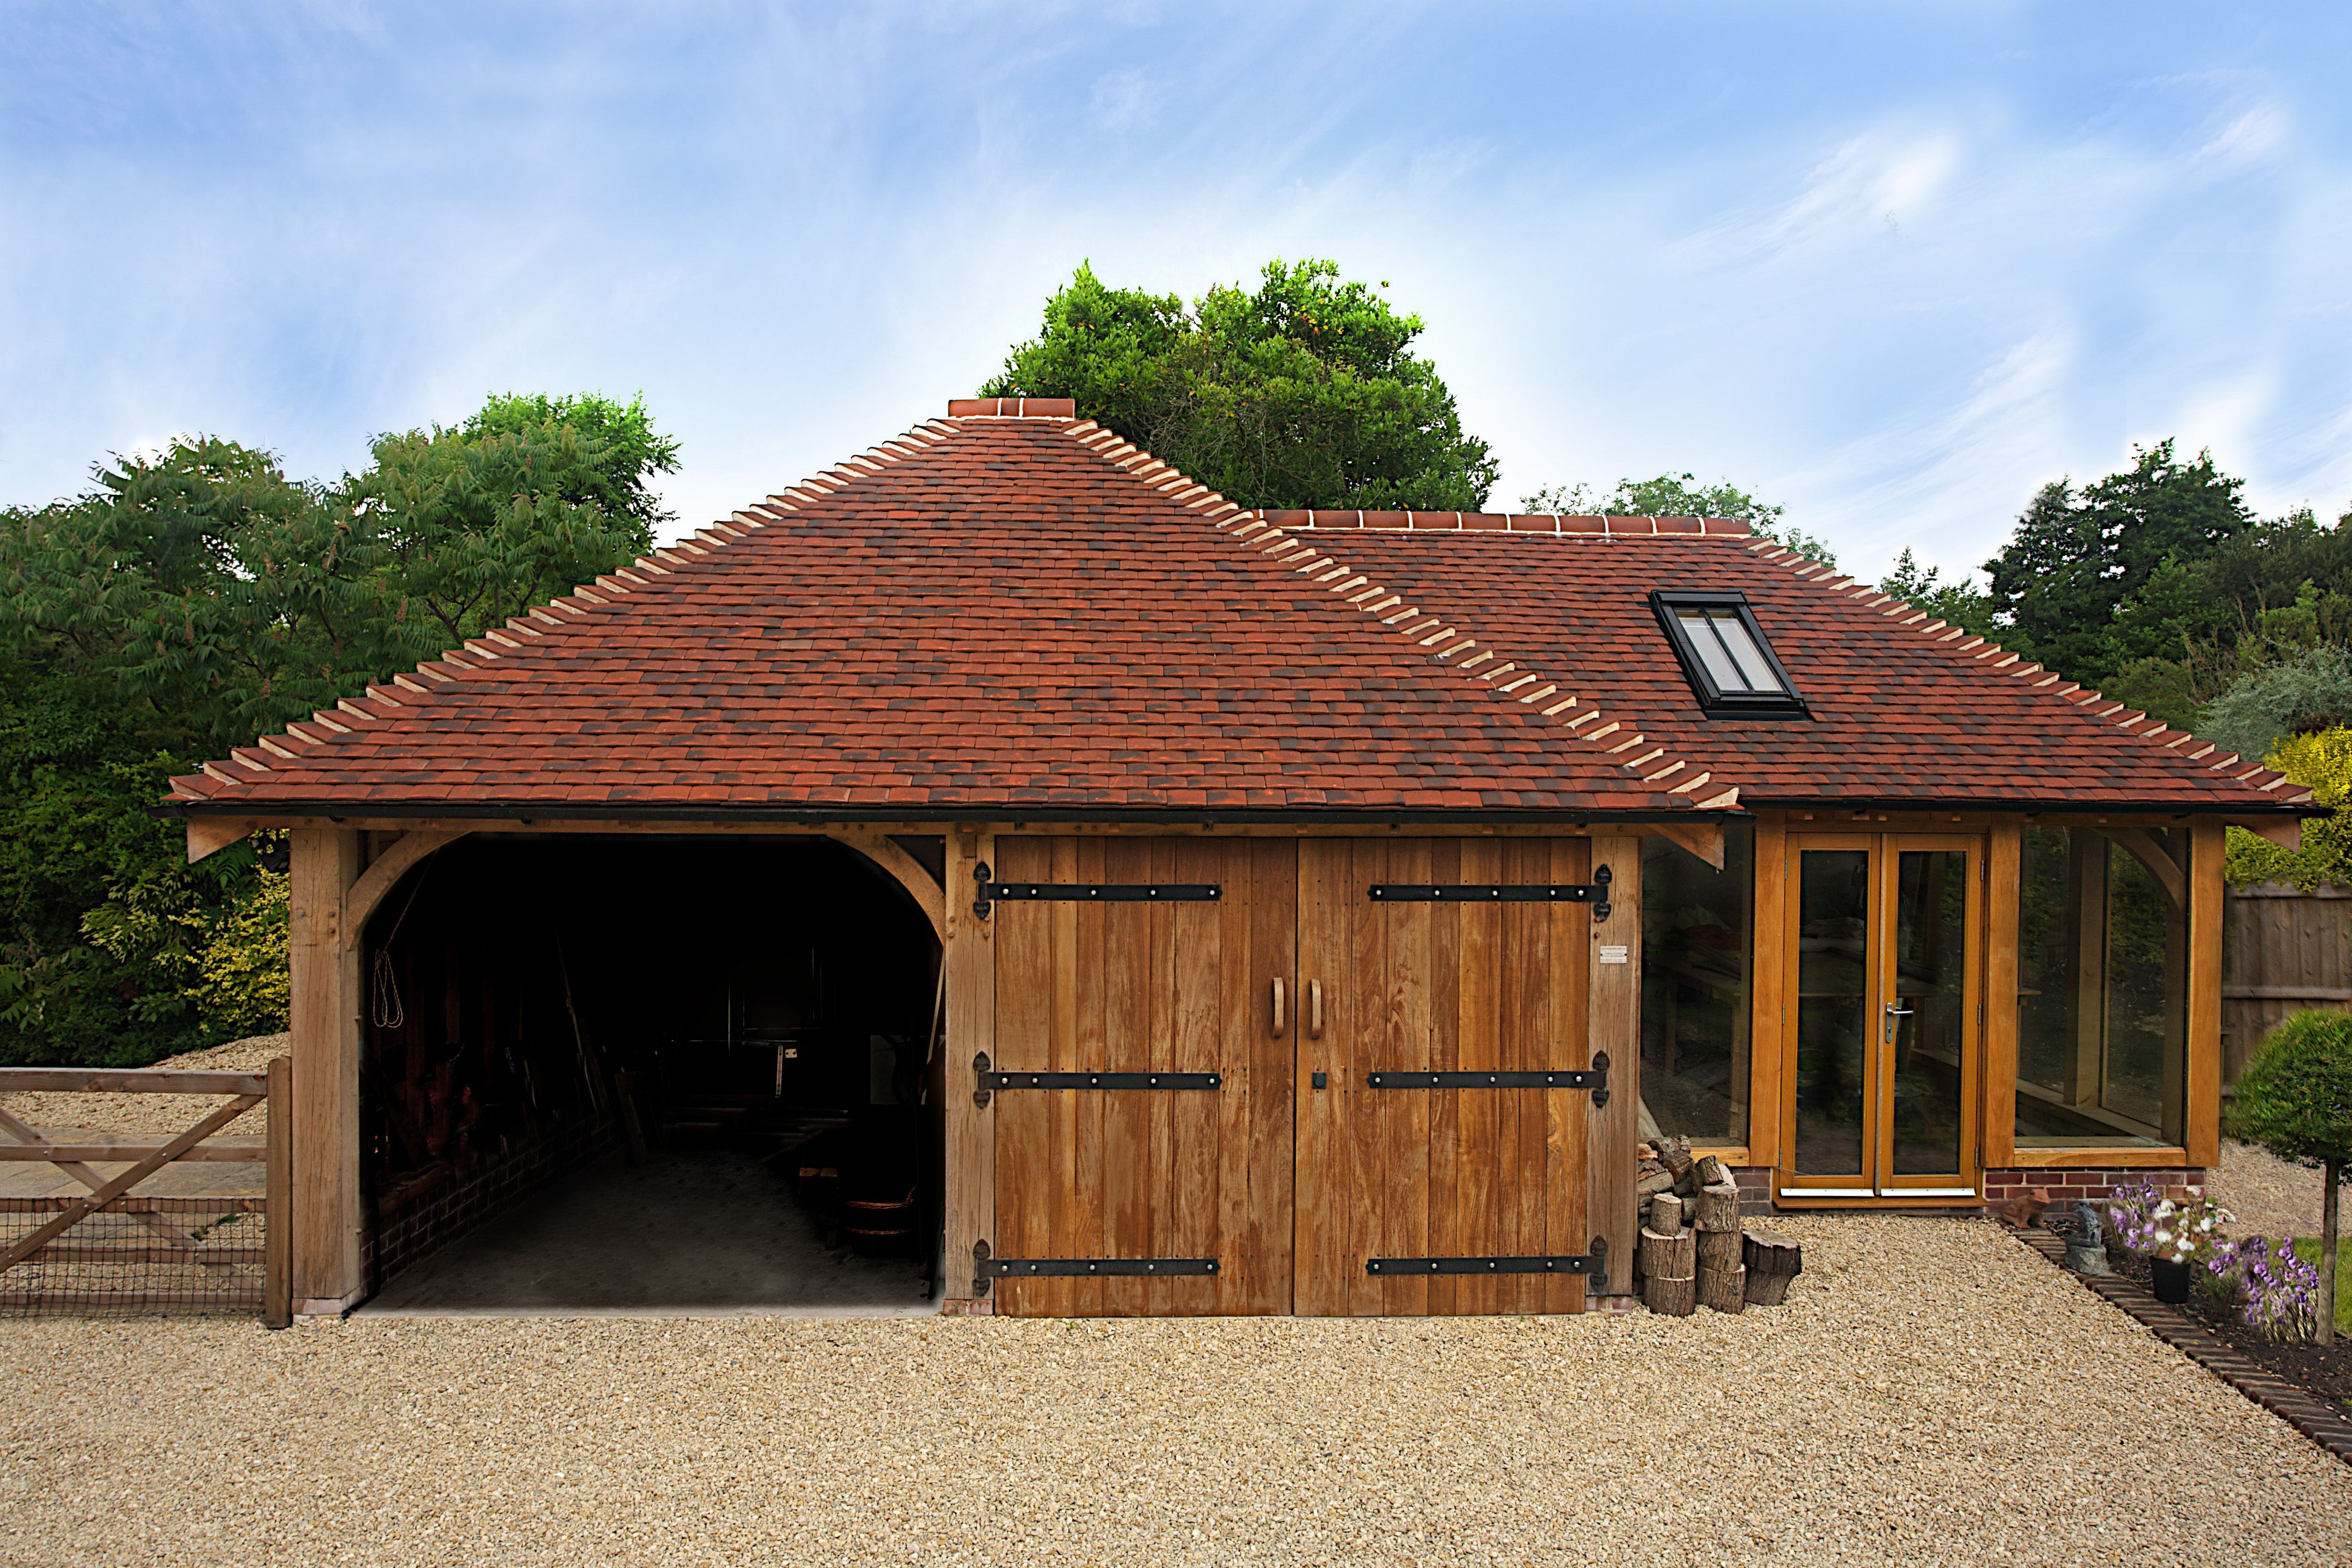 We have been building oak garages since 2003 and offer a